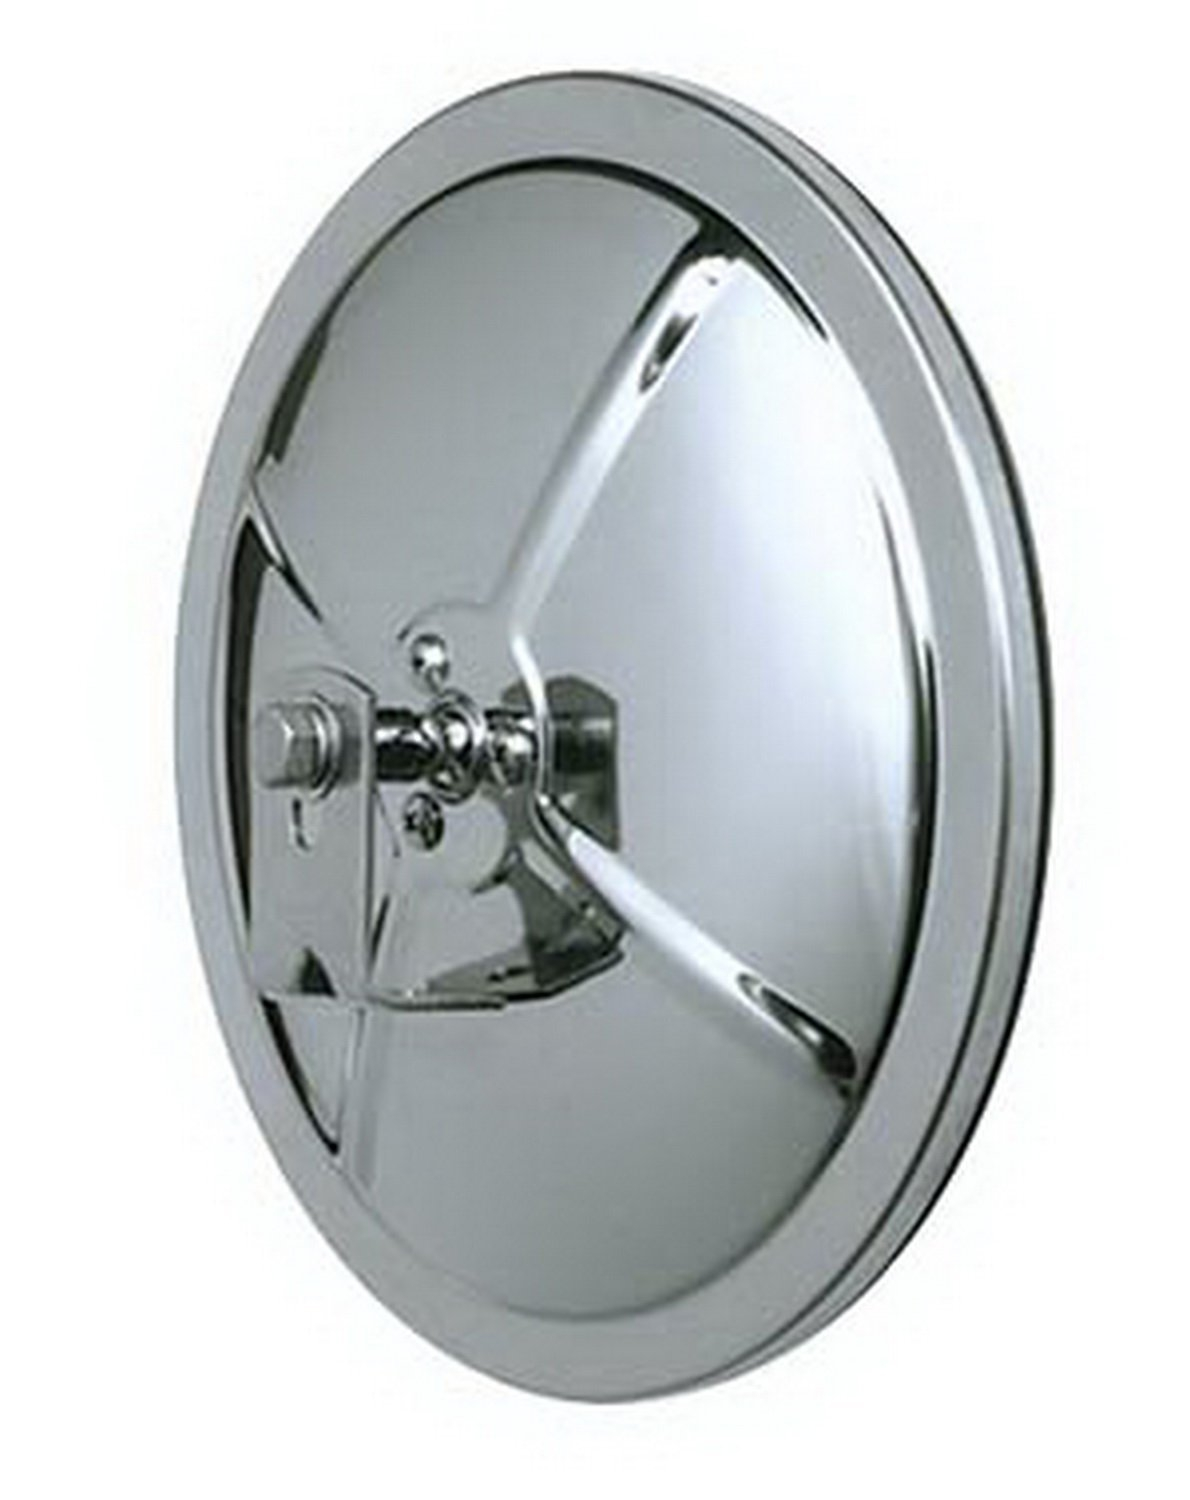 Amazon Cipa 48852 Stainless Round Convex Mirror Automotive Inside Round Convex Mirrors (Image 1 of 15)